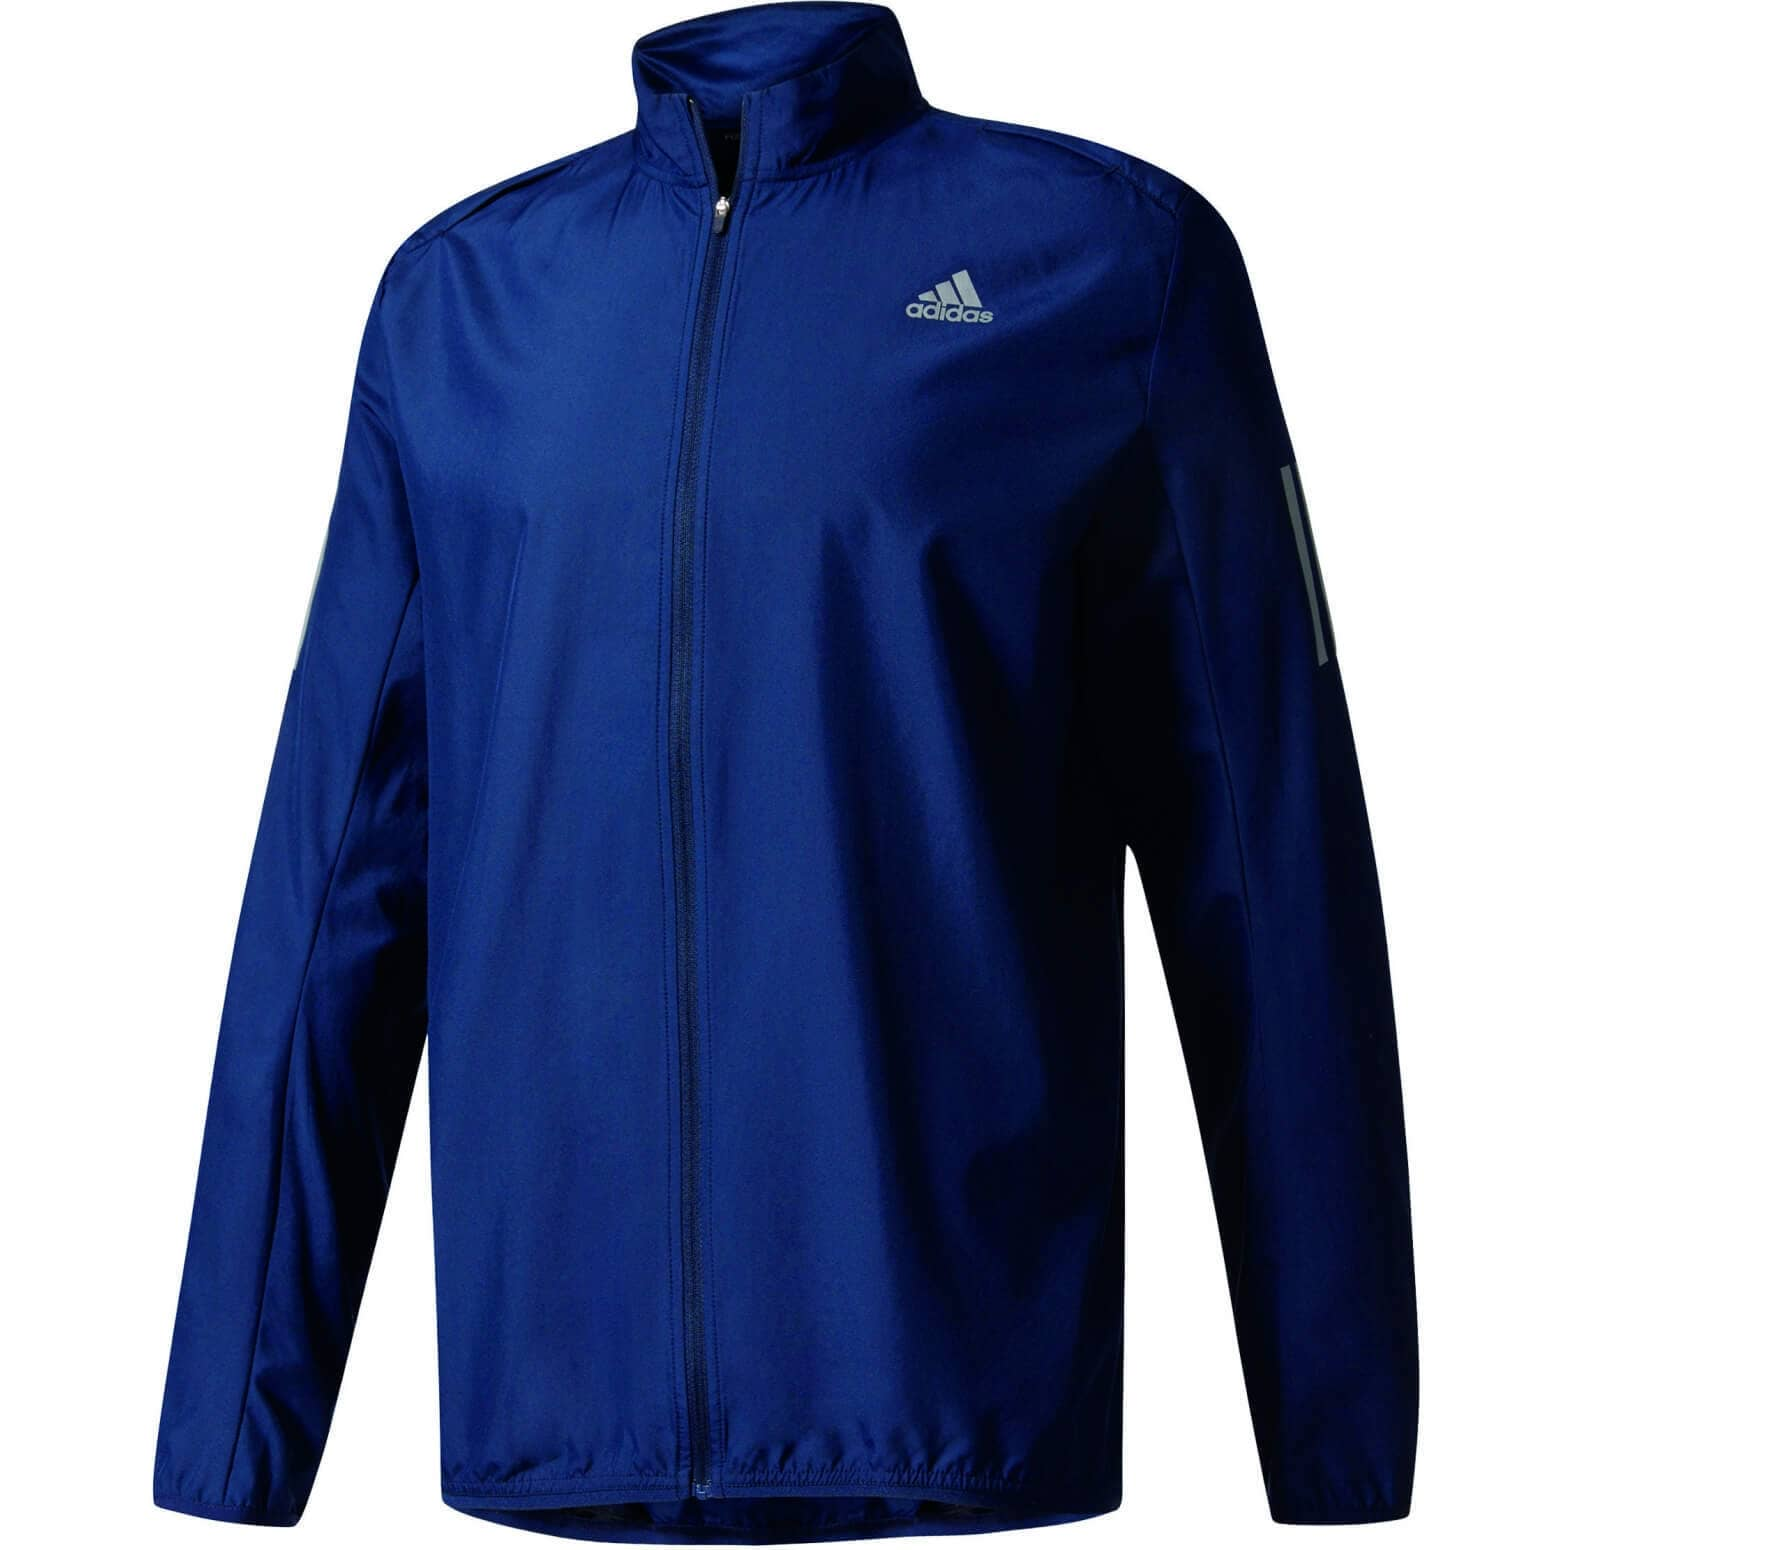 Adidas - Response Wind men's running jacket (dark blue) - S thumbnail